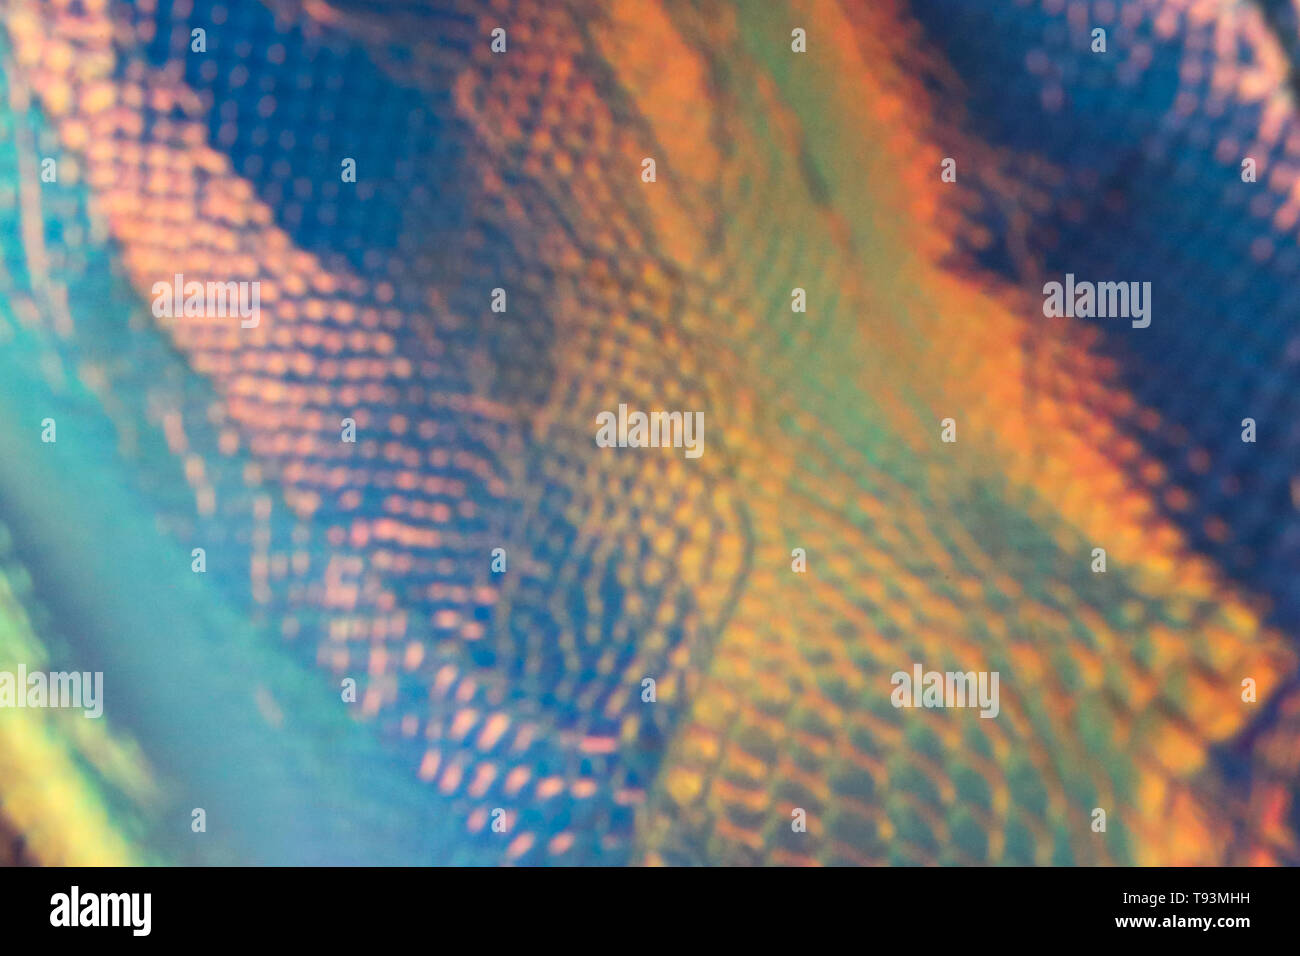 Abstract trendy holographic background with neon colors. Backdrop for your design. - Stock Image